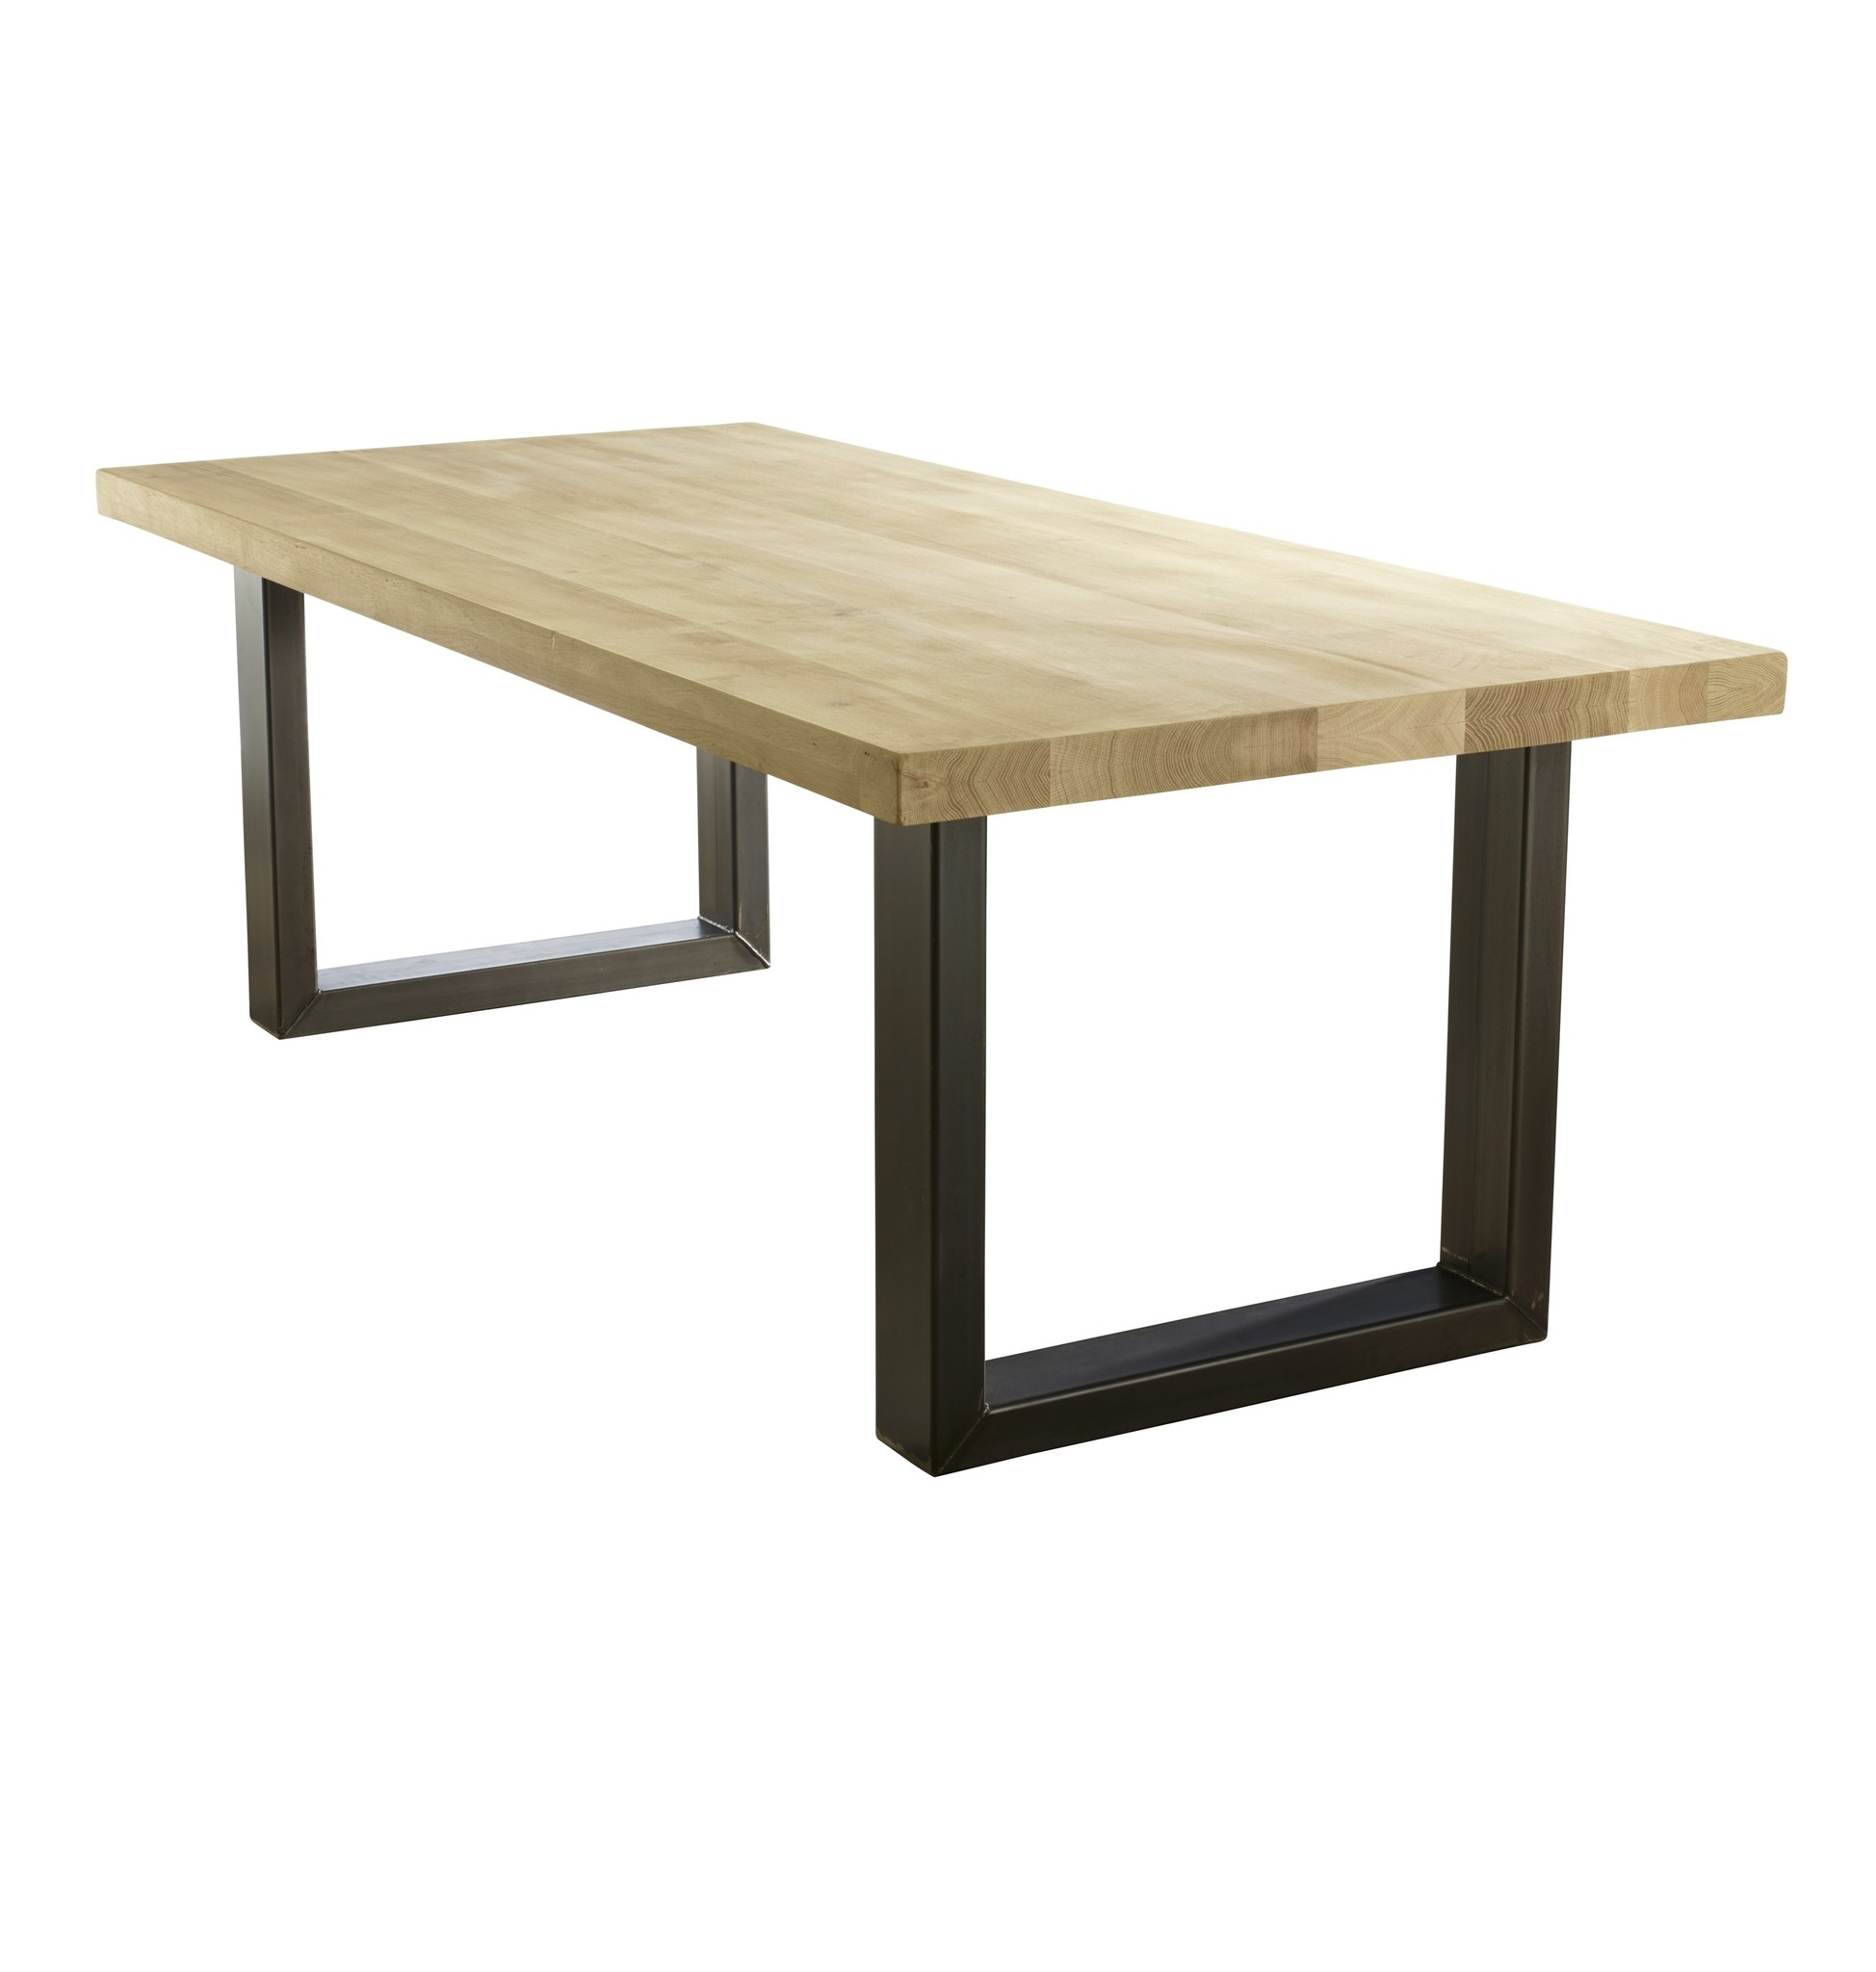 Eiken houten tafel - Washington slim